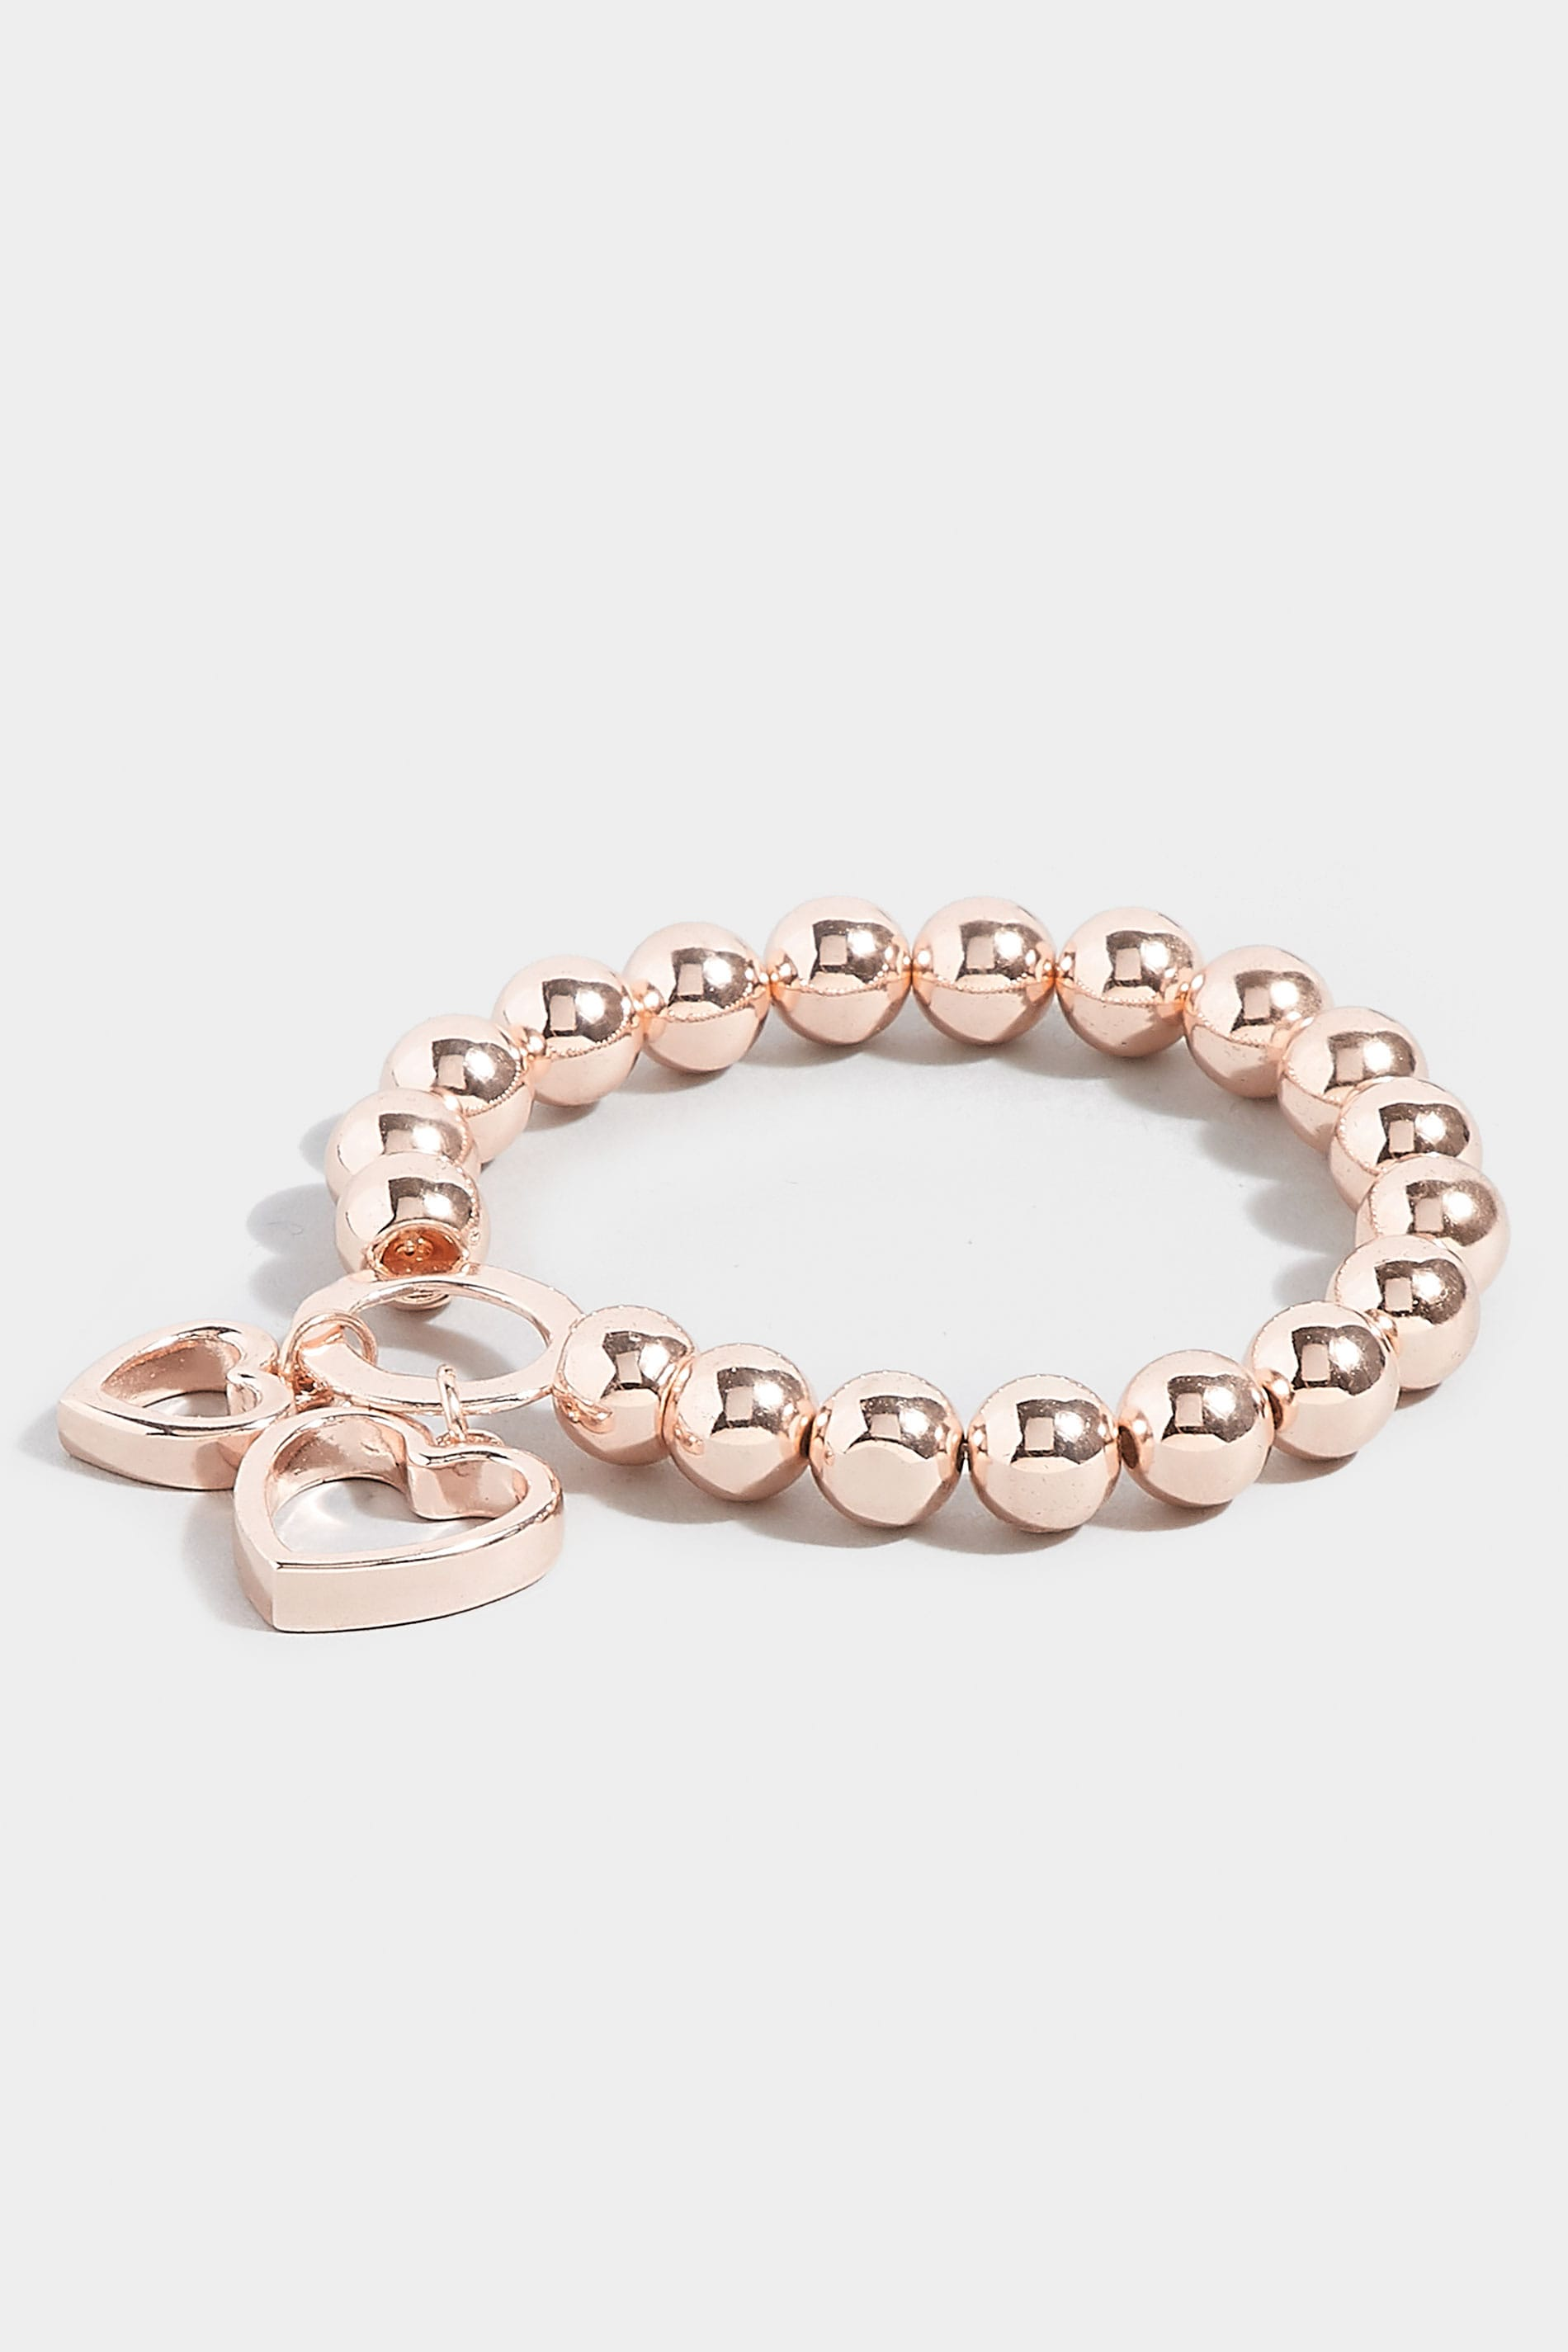 Rose Gold Bead Bracelet With Heart Pendants